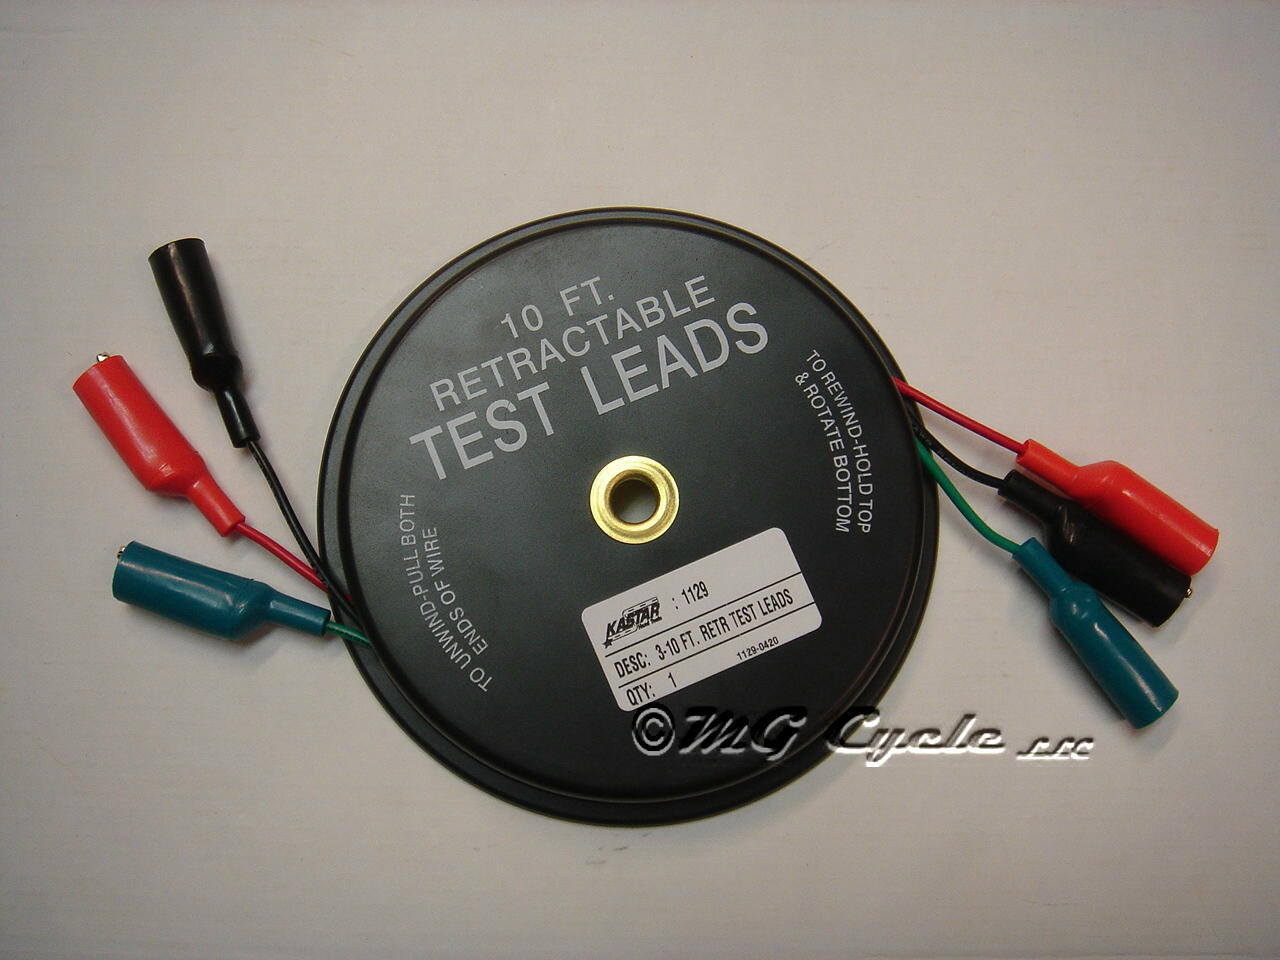 retractable test lead set